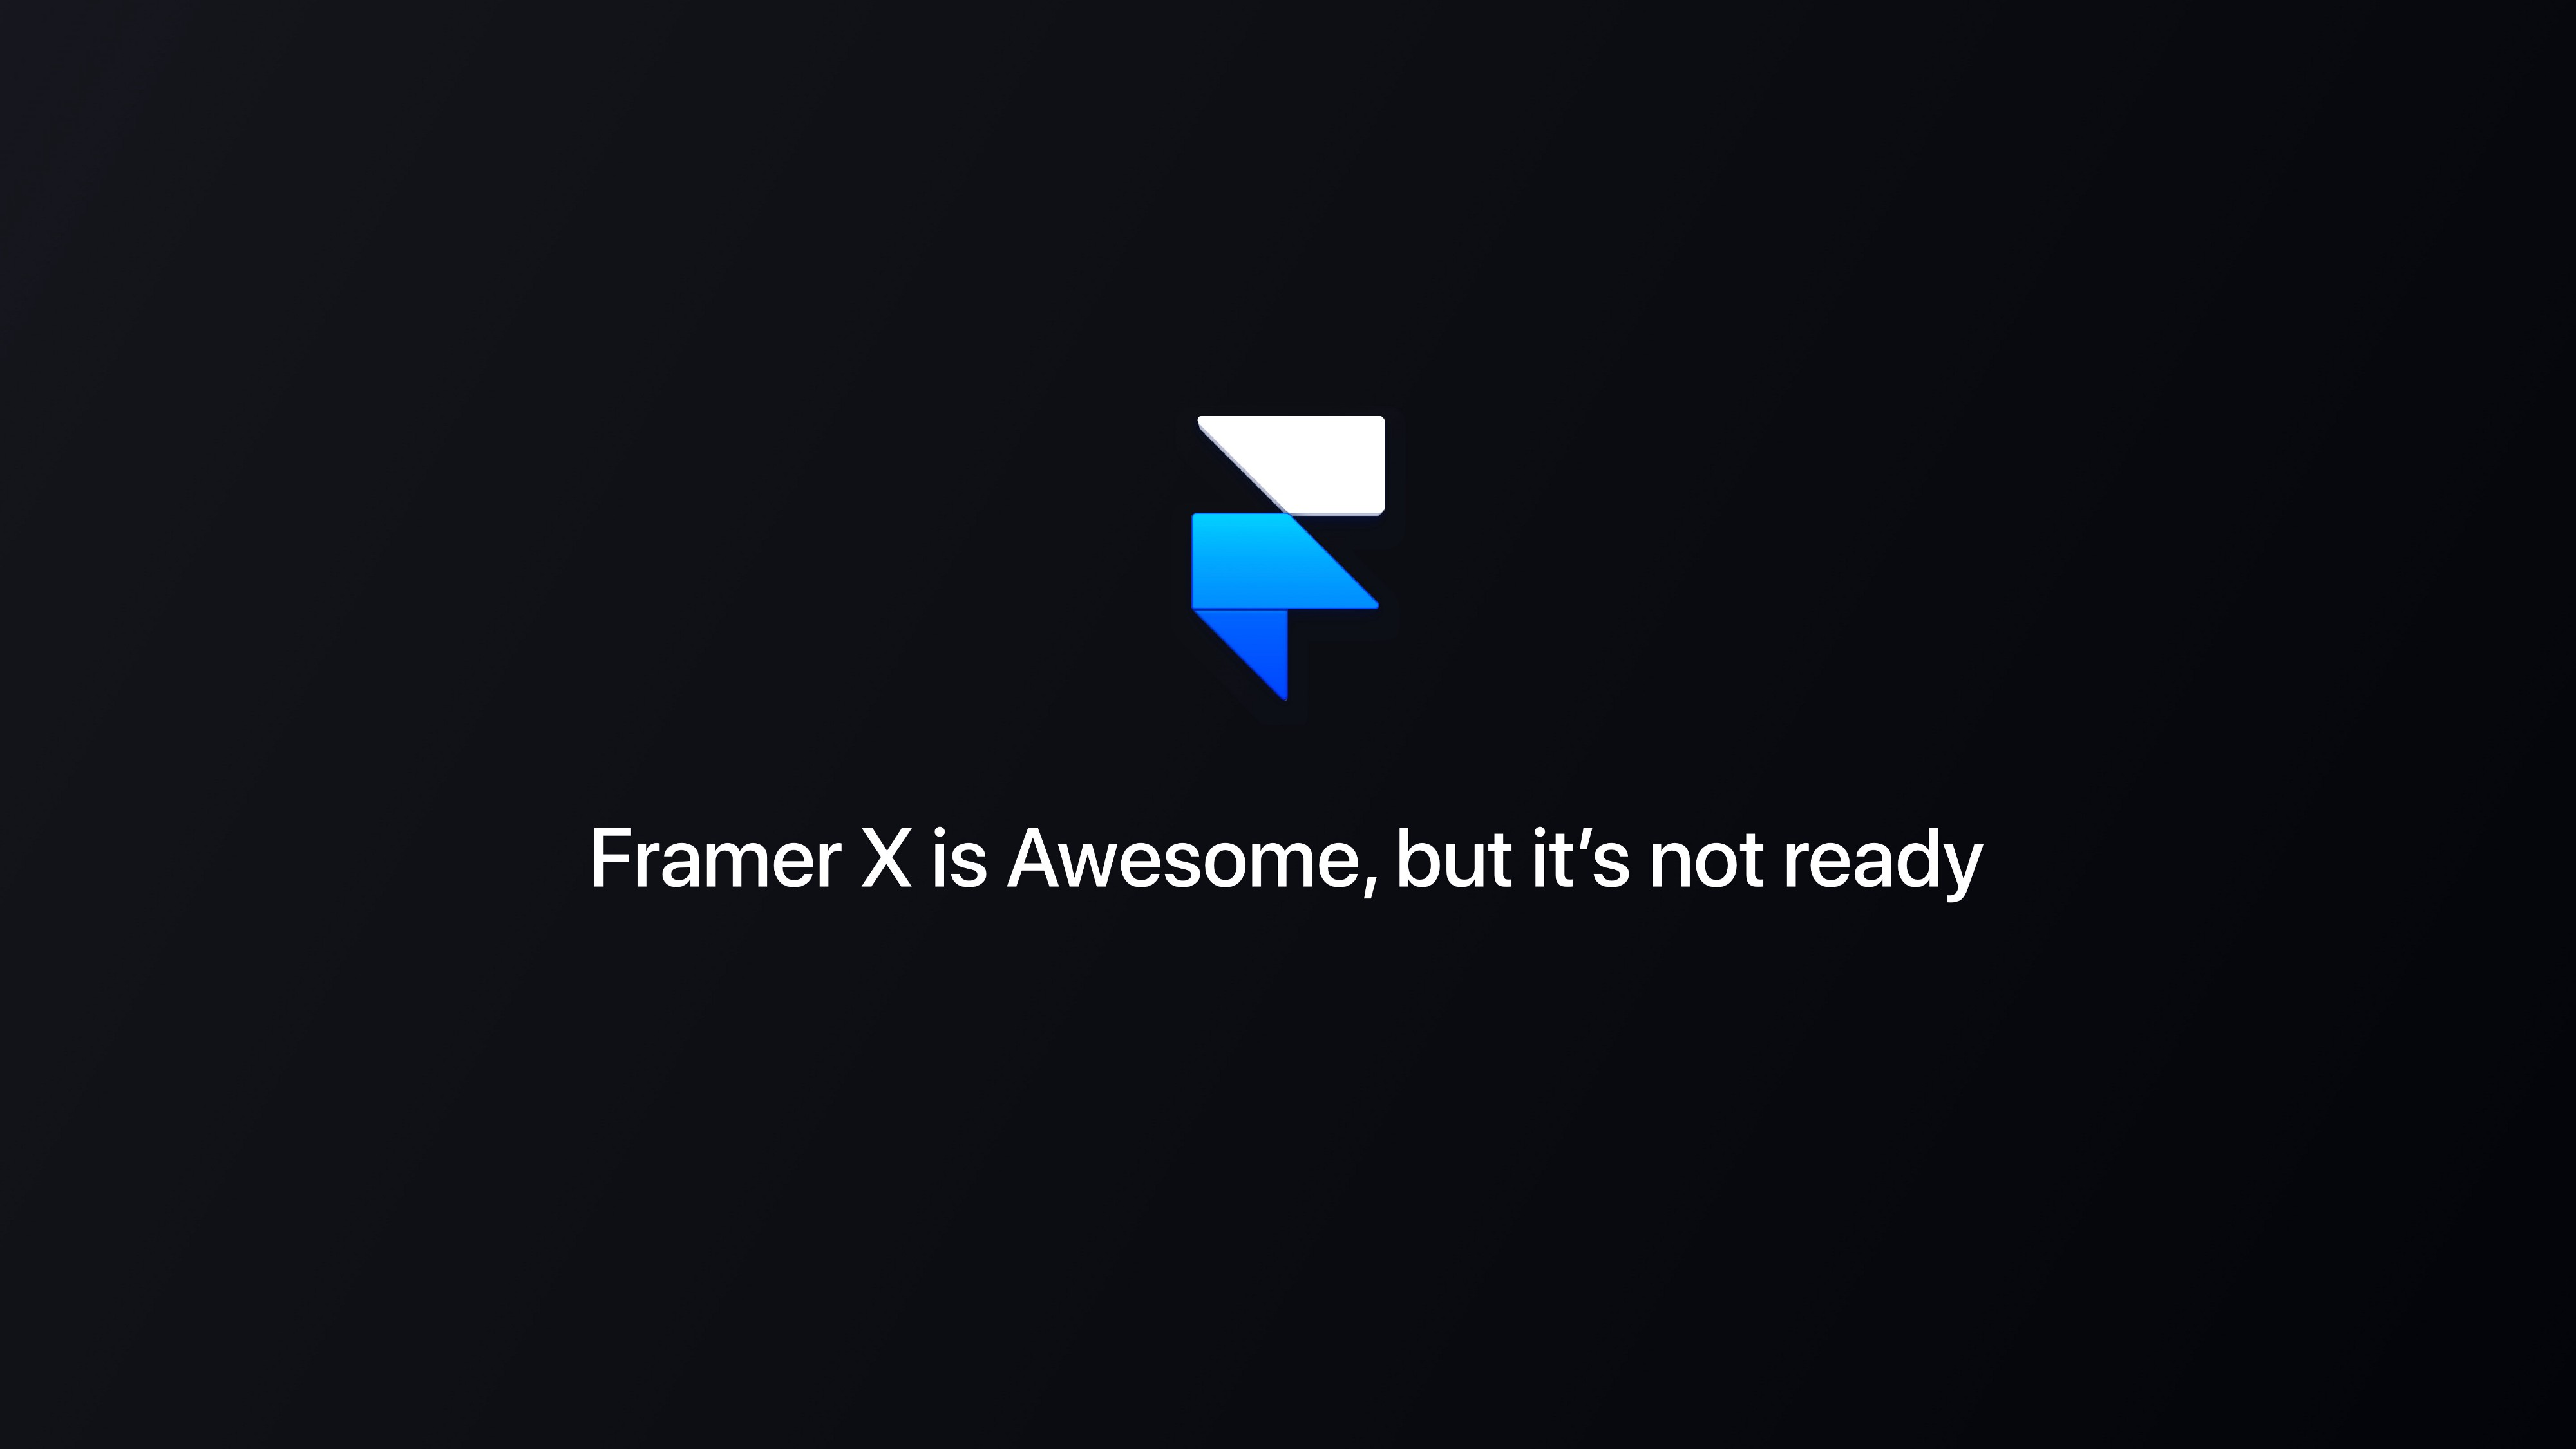 Framer X is Awesome, but it's not ready - Prototypr